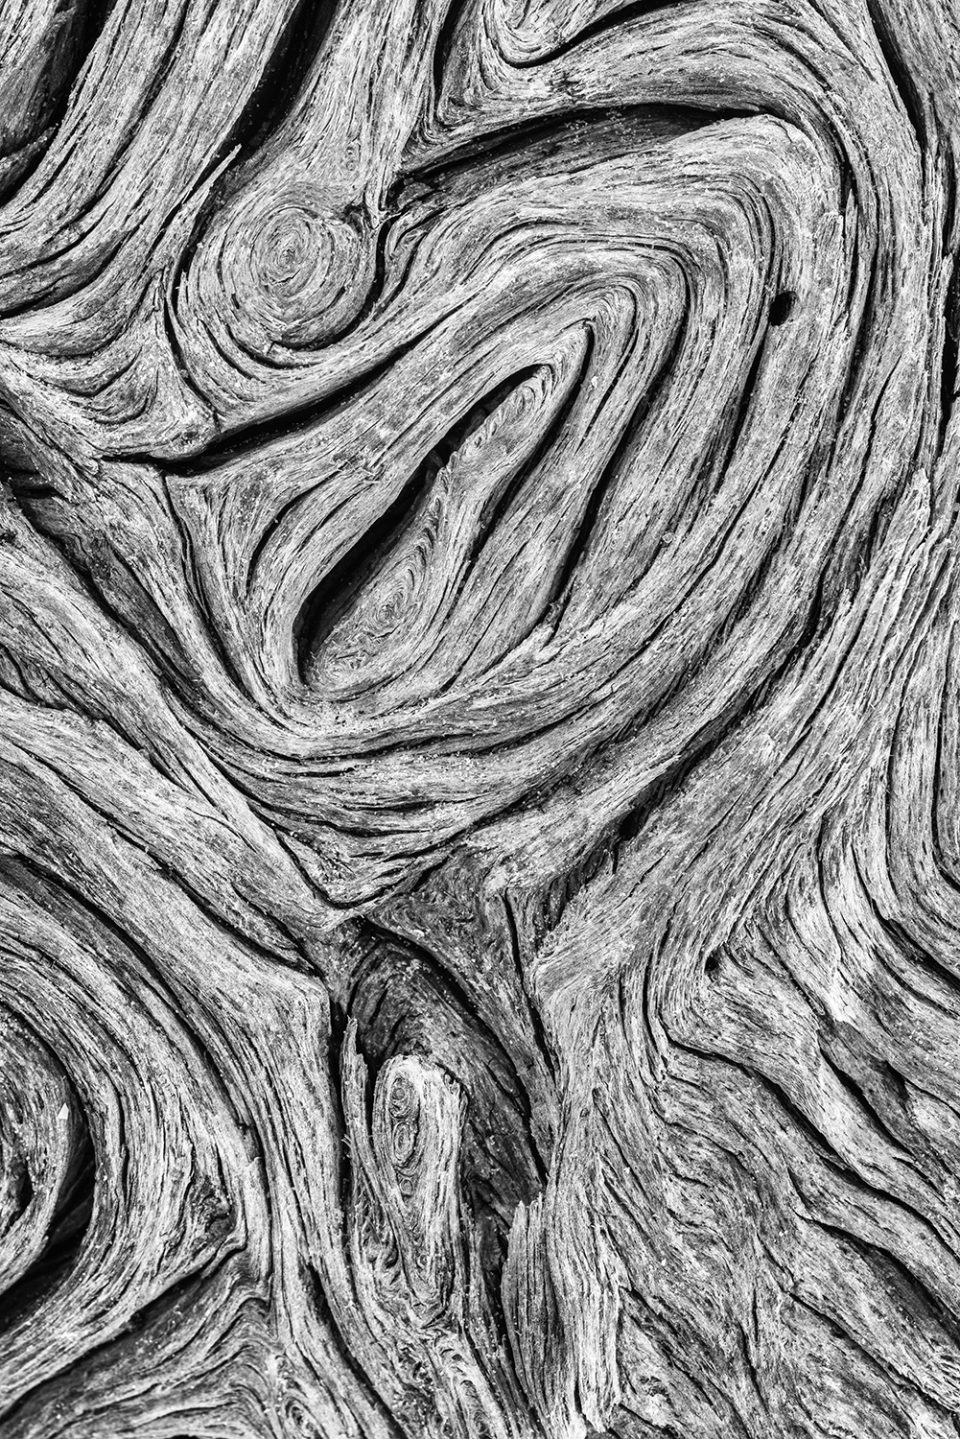 Driftwood texture in black and white by fine art photographer Keith Dotson.